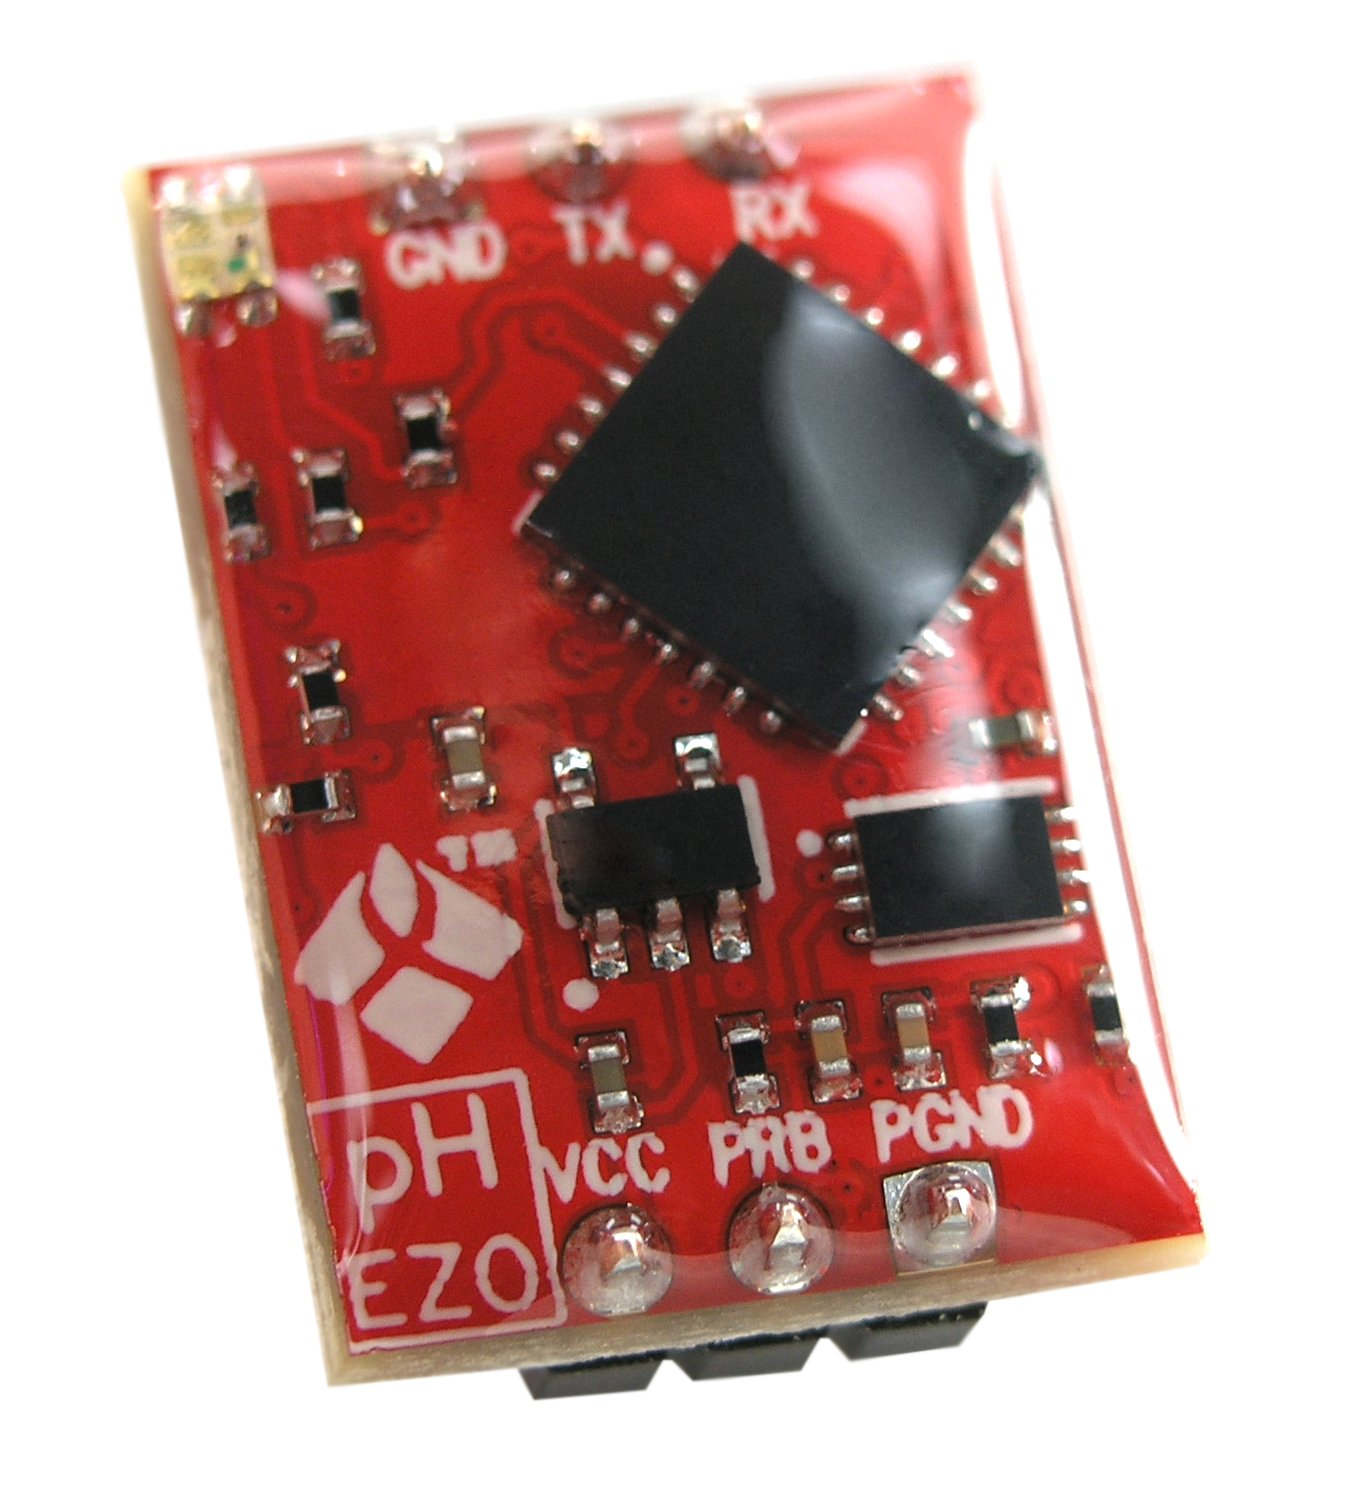 Atlas Scientific Ezo Ph Circuit Work With Off The Shelf Probe Sensor For Arduino Sale Electrode Designed Calibrate And Read Full